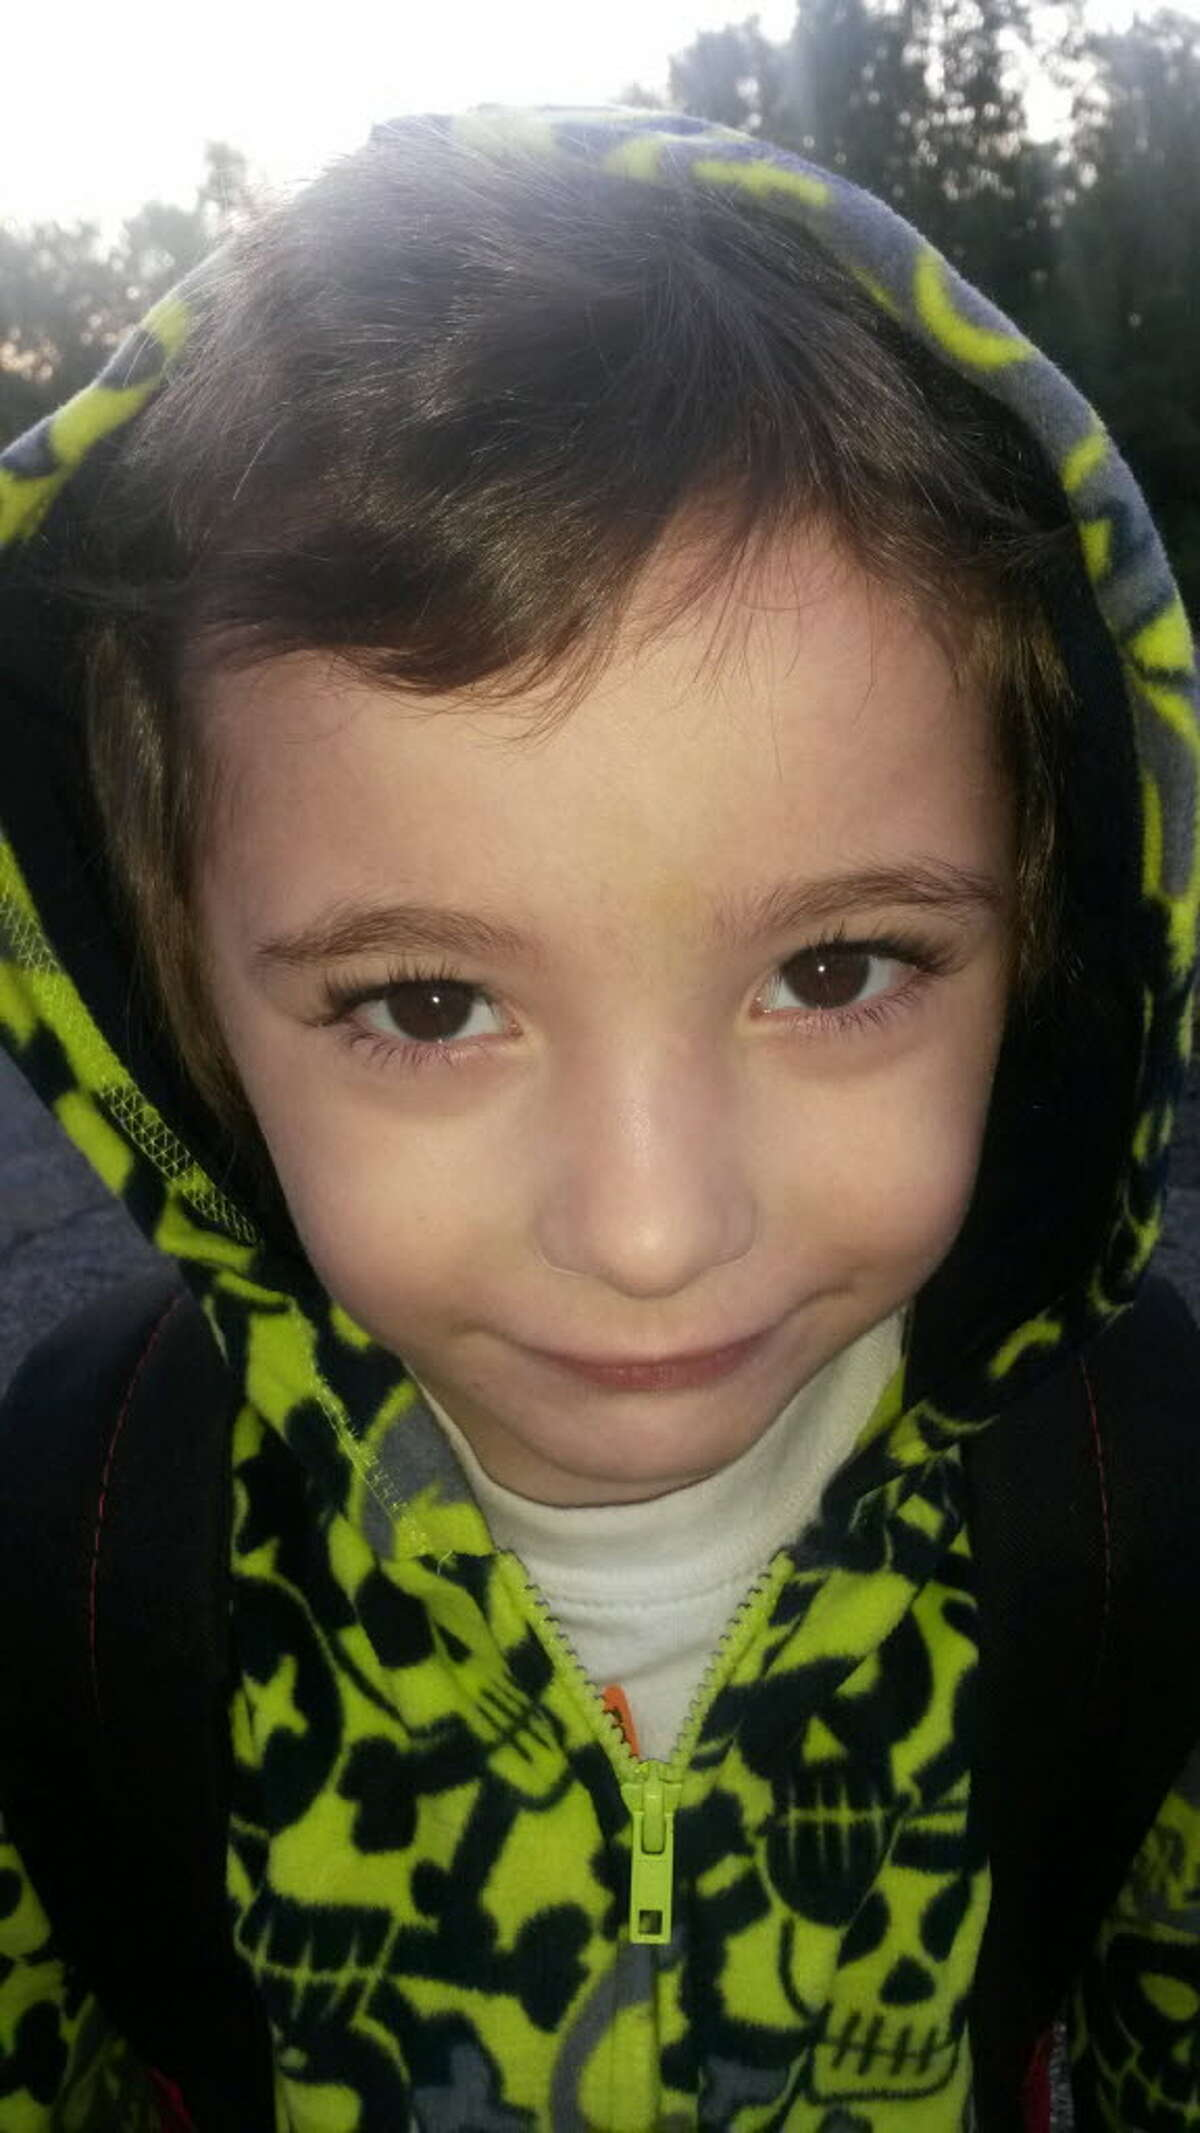 Photo of 5-year-old Kenneth White, the Knox boy who was killed just before Christmas 2014. His cousin, who was 19 at the time, was charged with homicide in his death. (Photo provided by Brenda VanAlstyne)